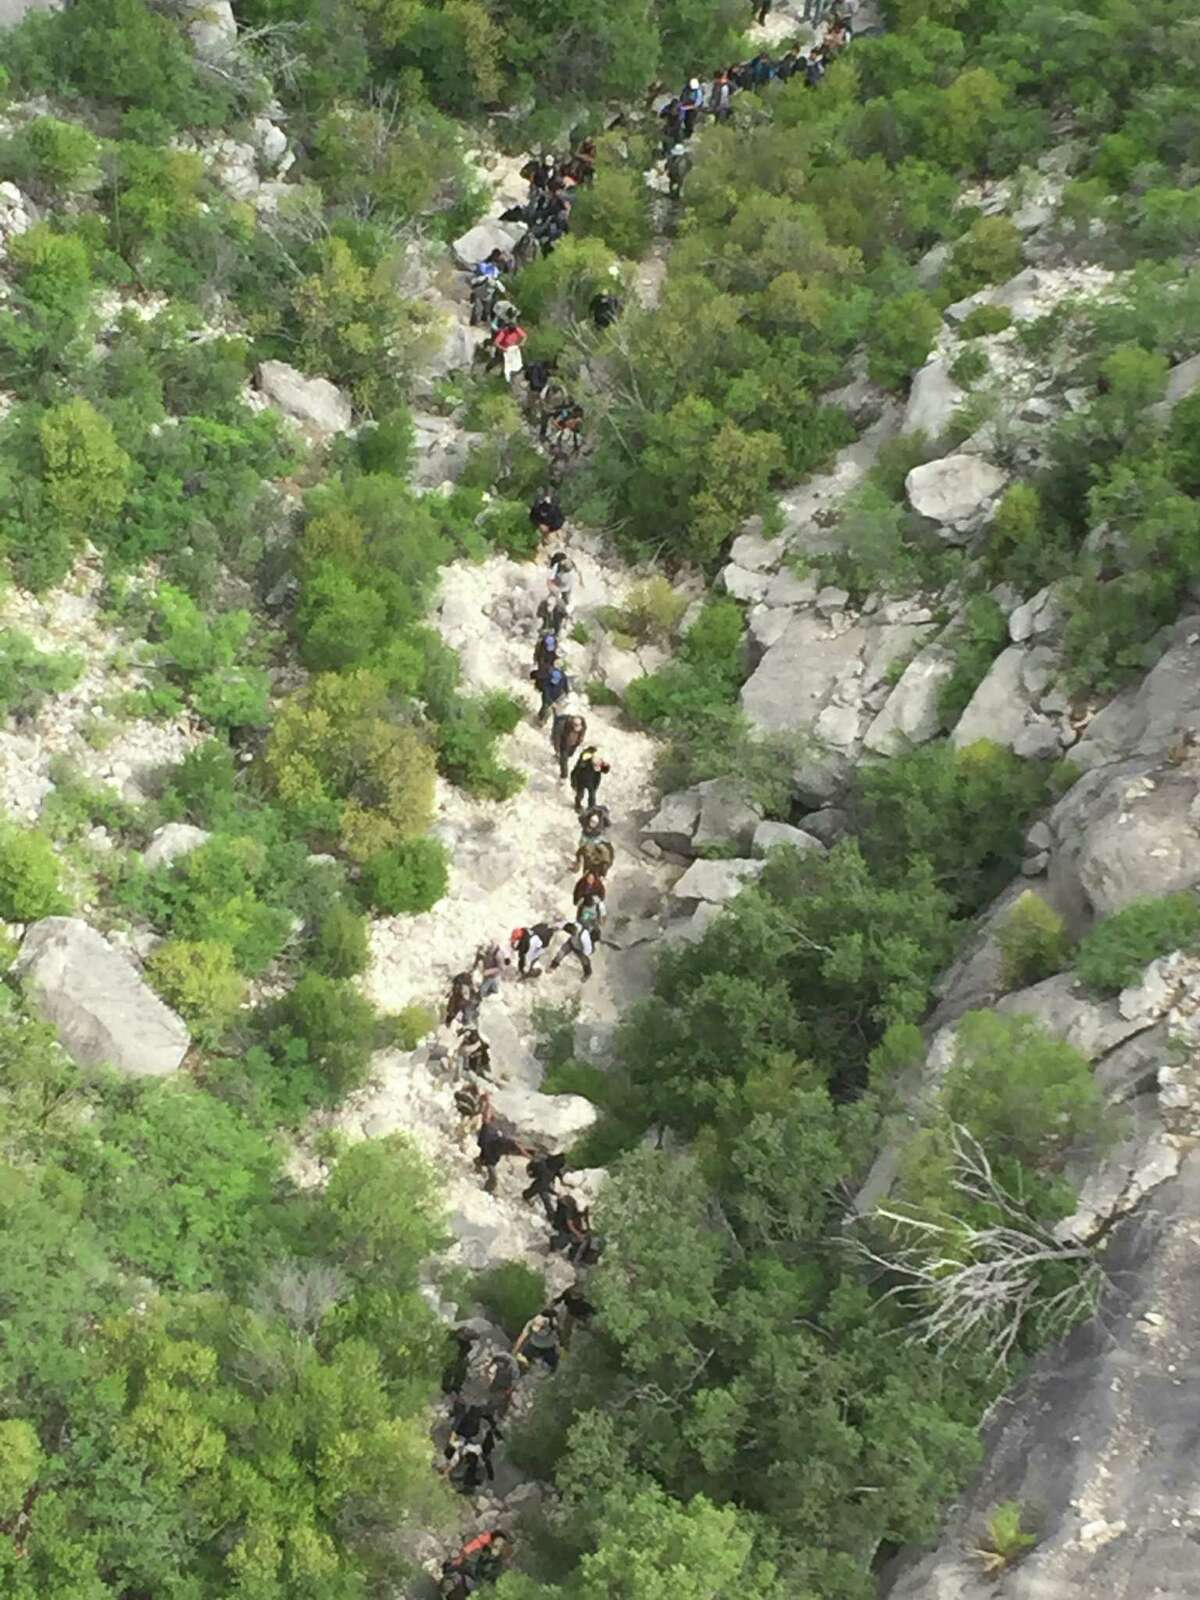 U.S. Border Patrol agents arrested 73 immigrants last week for allegedly illegally crossing into the United States near Del Rio. Border Patrol agents assigned to the Comstock station found footprints belonging to a large group Thursday morning, following the trail for about 30 minutes before locating the group near Comstock, according to a U.S. Department of Homeland Security news release.